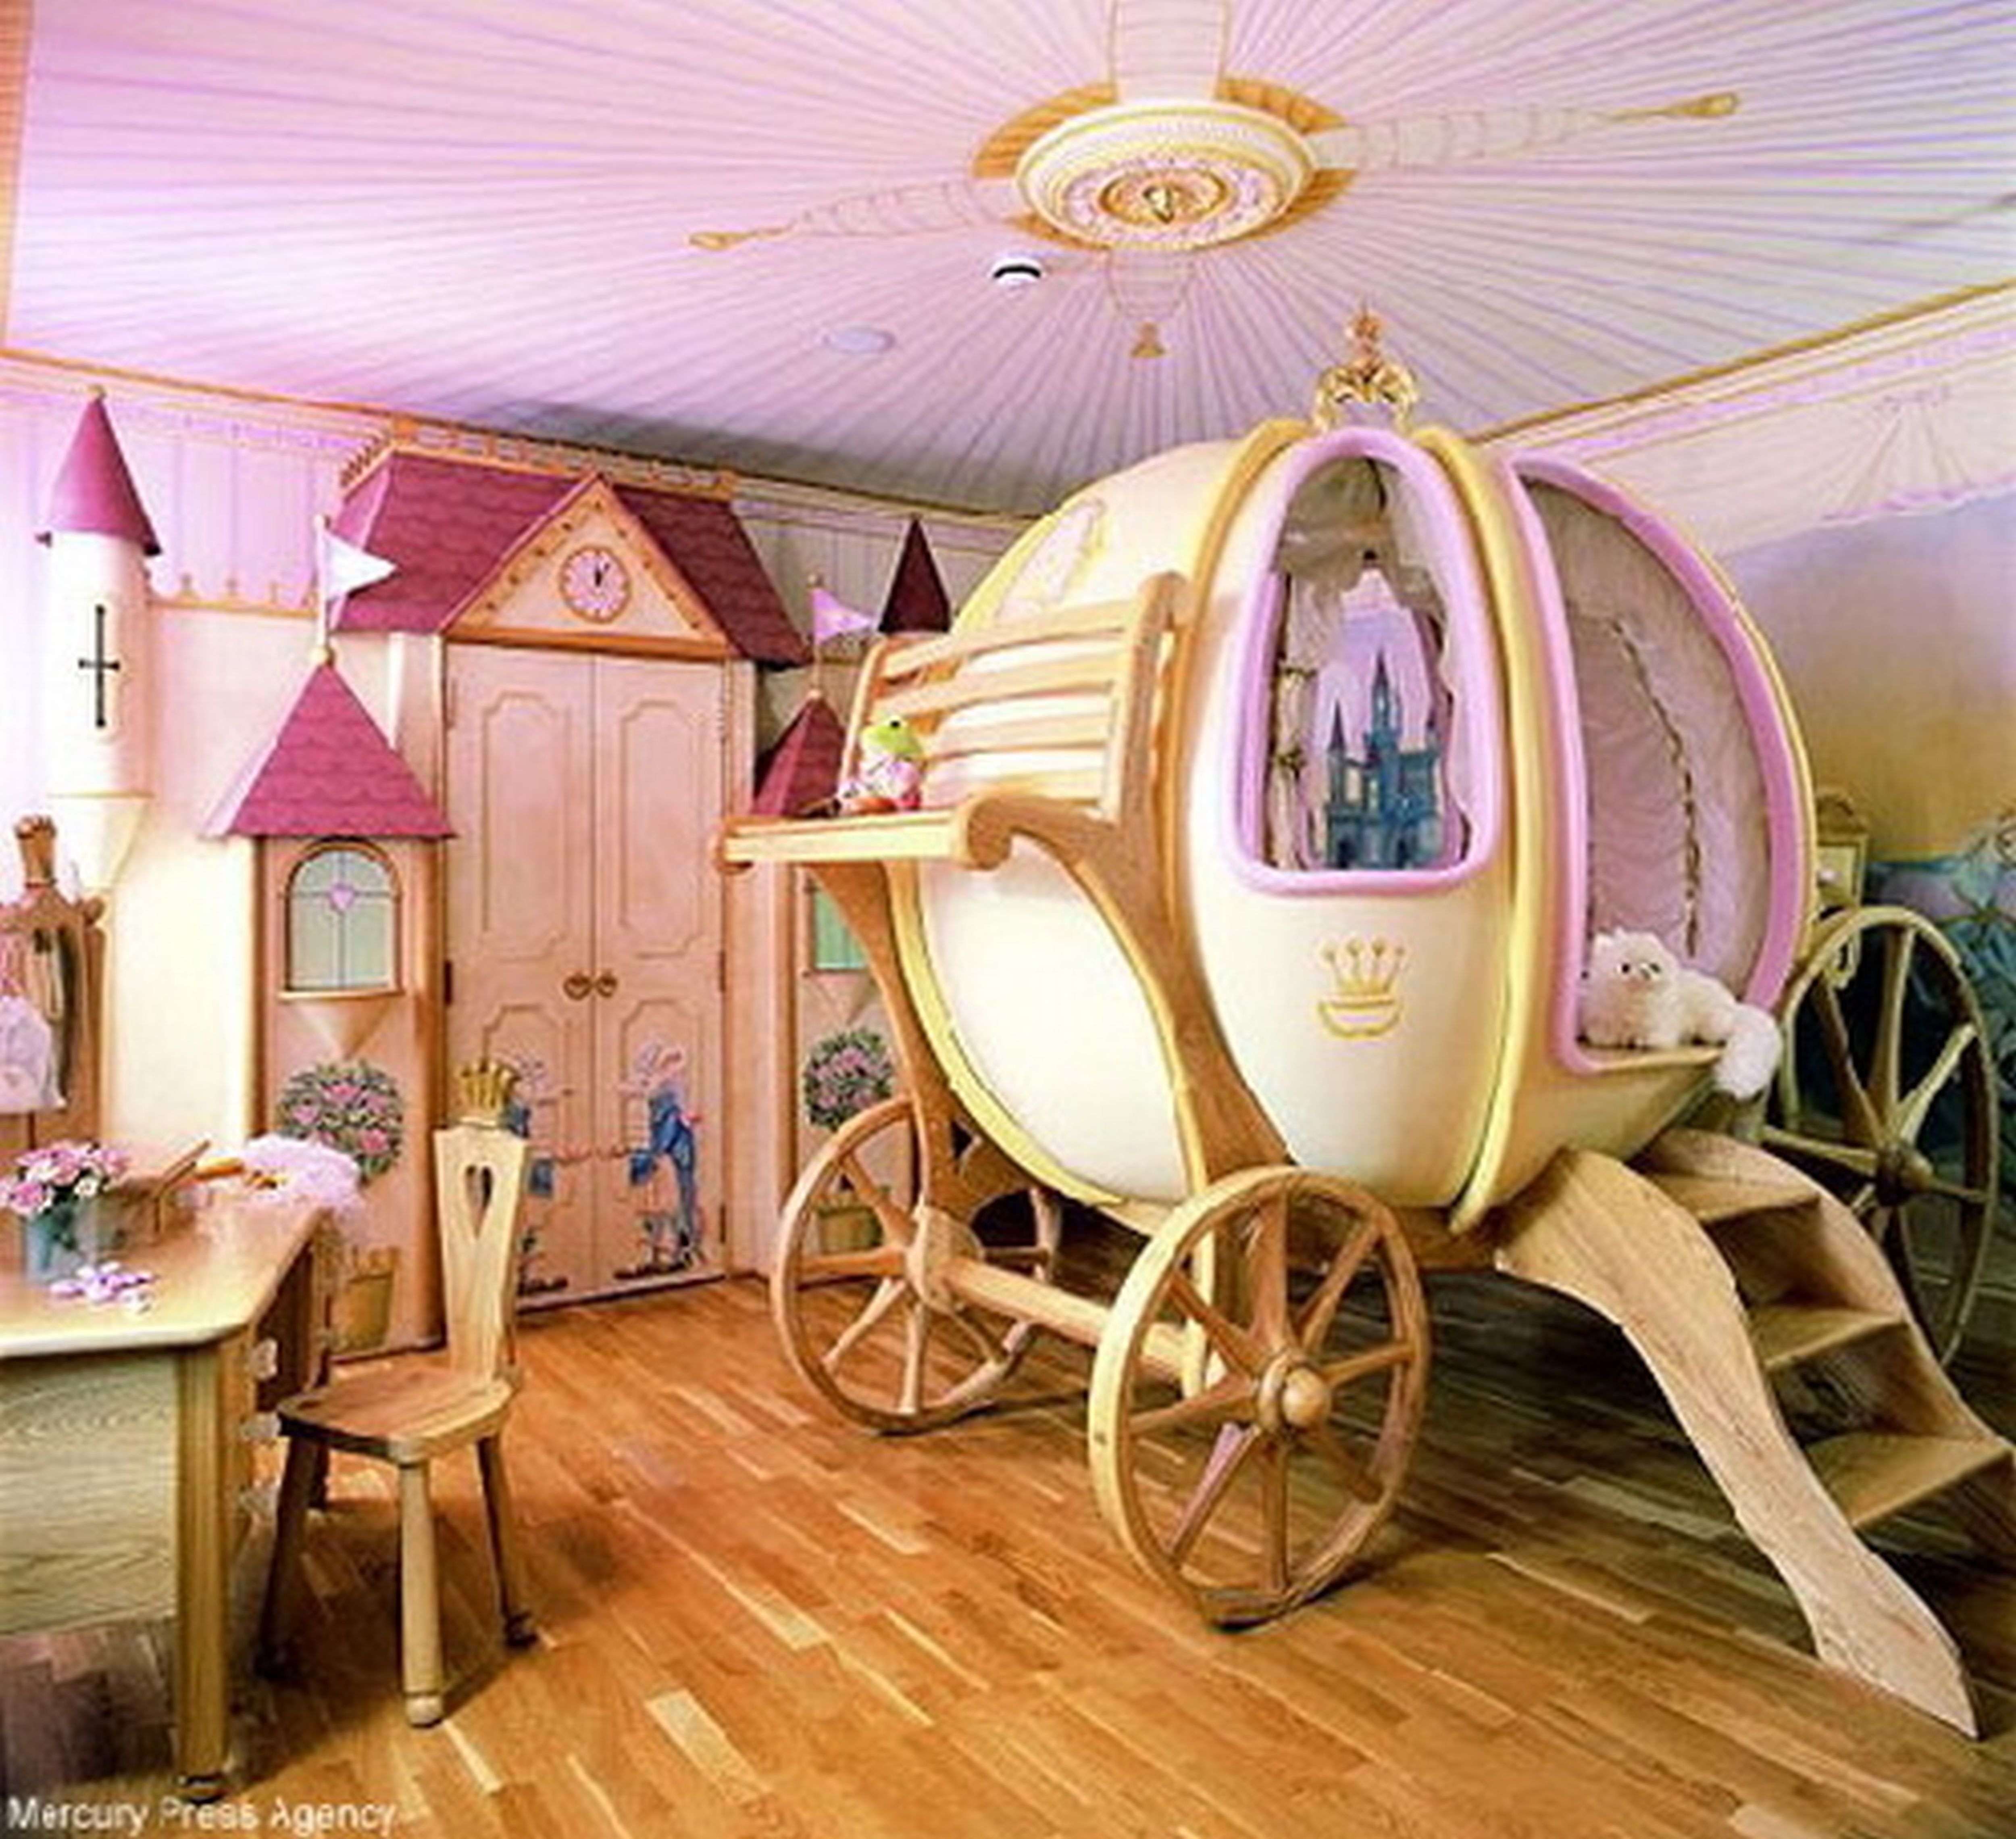 Stunning The Carriage Room childrens themed bedrooms